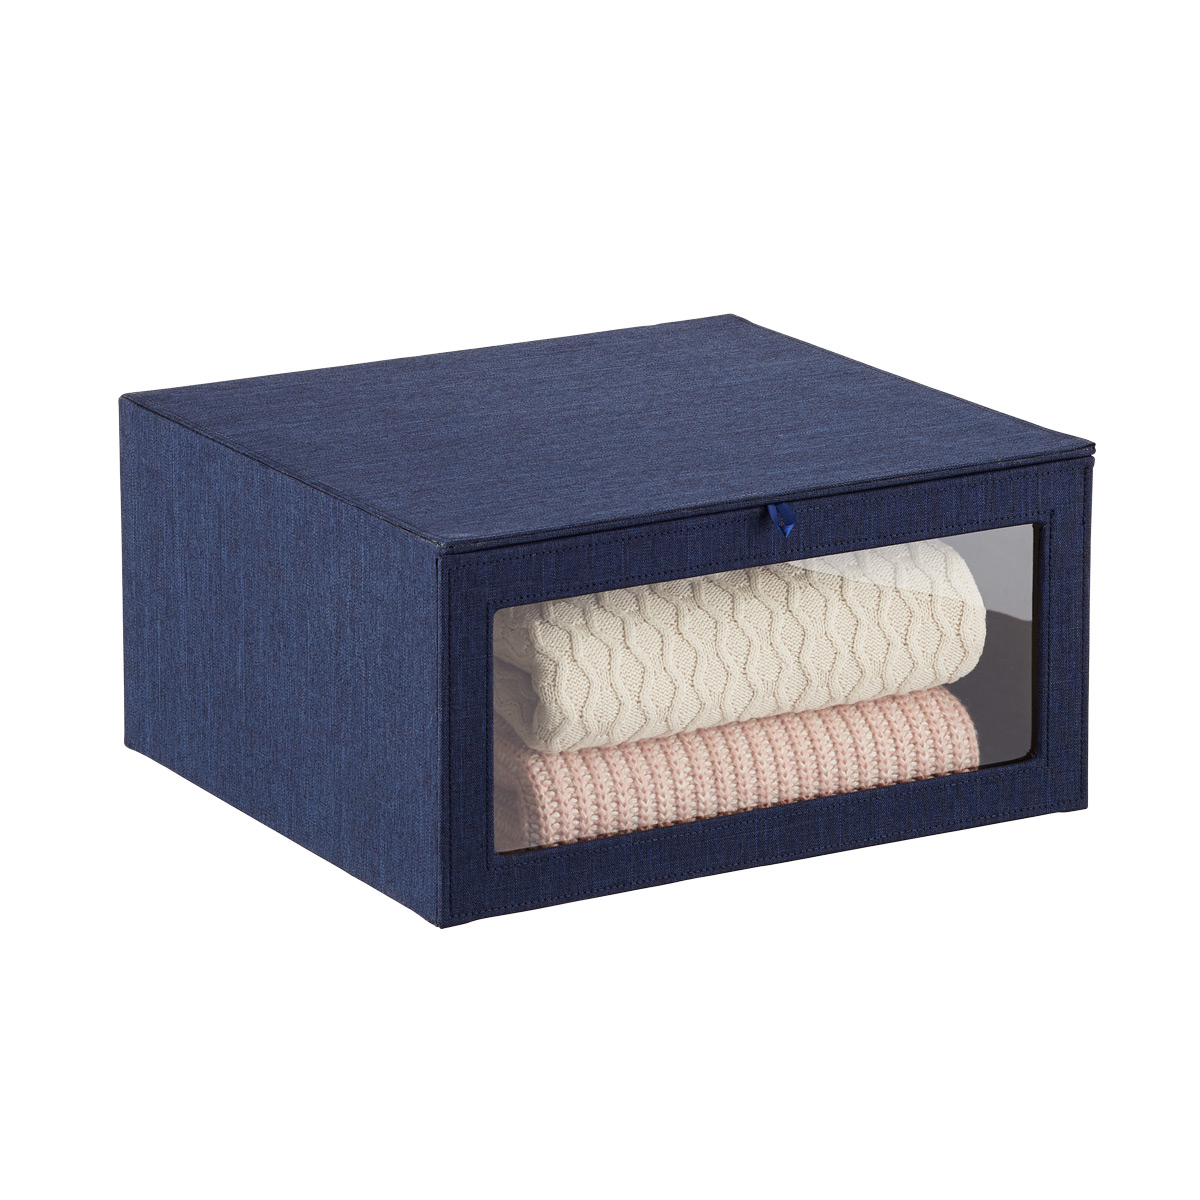 Navy Cambridge Drop-Front Sweater Box